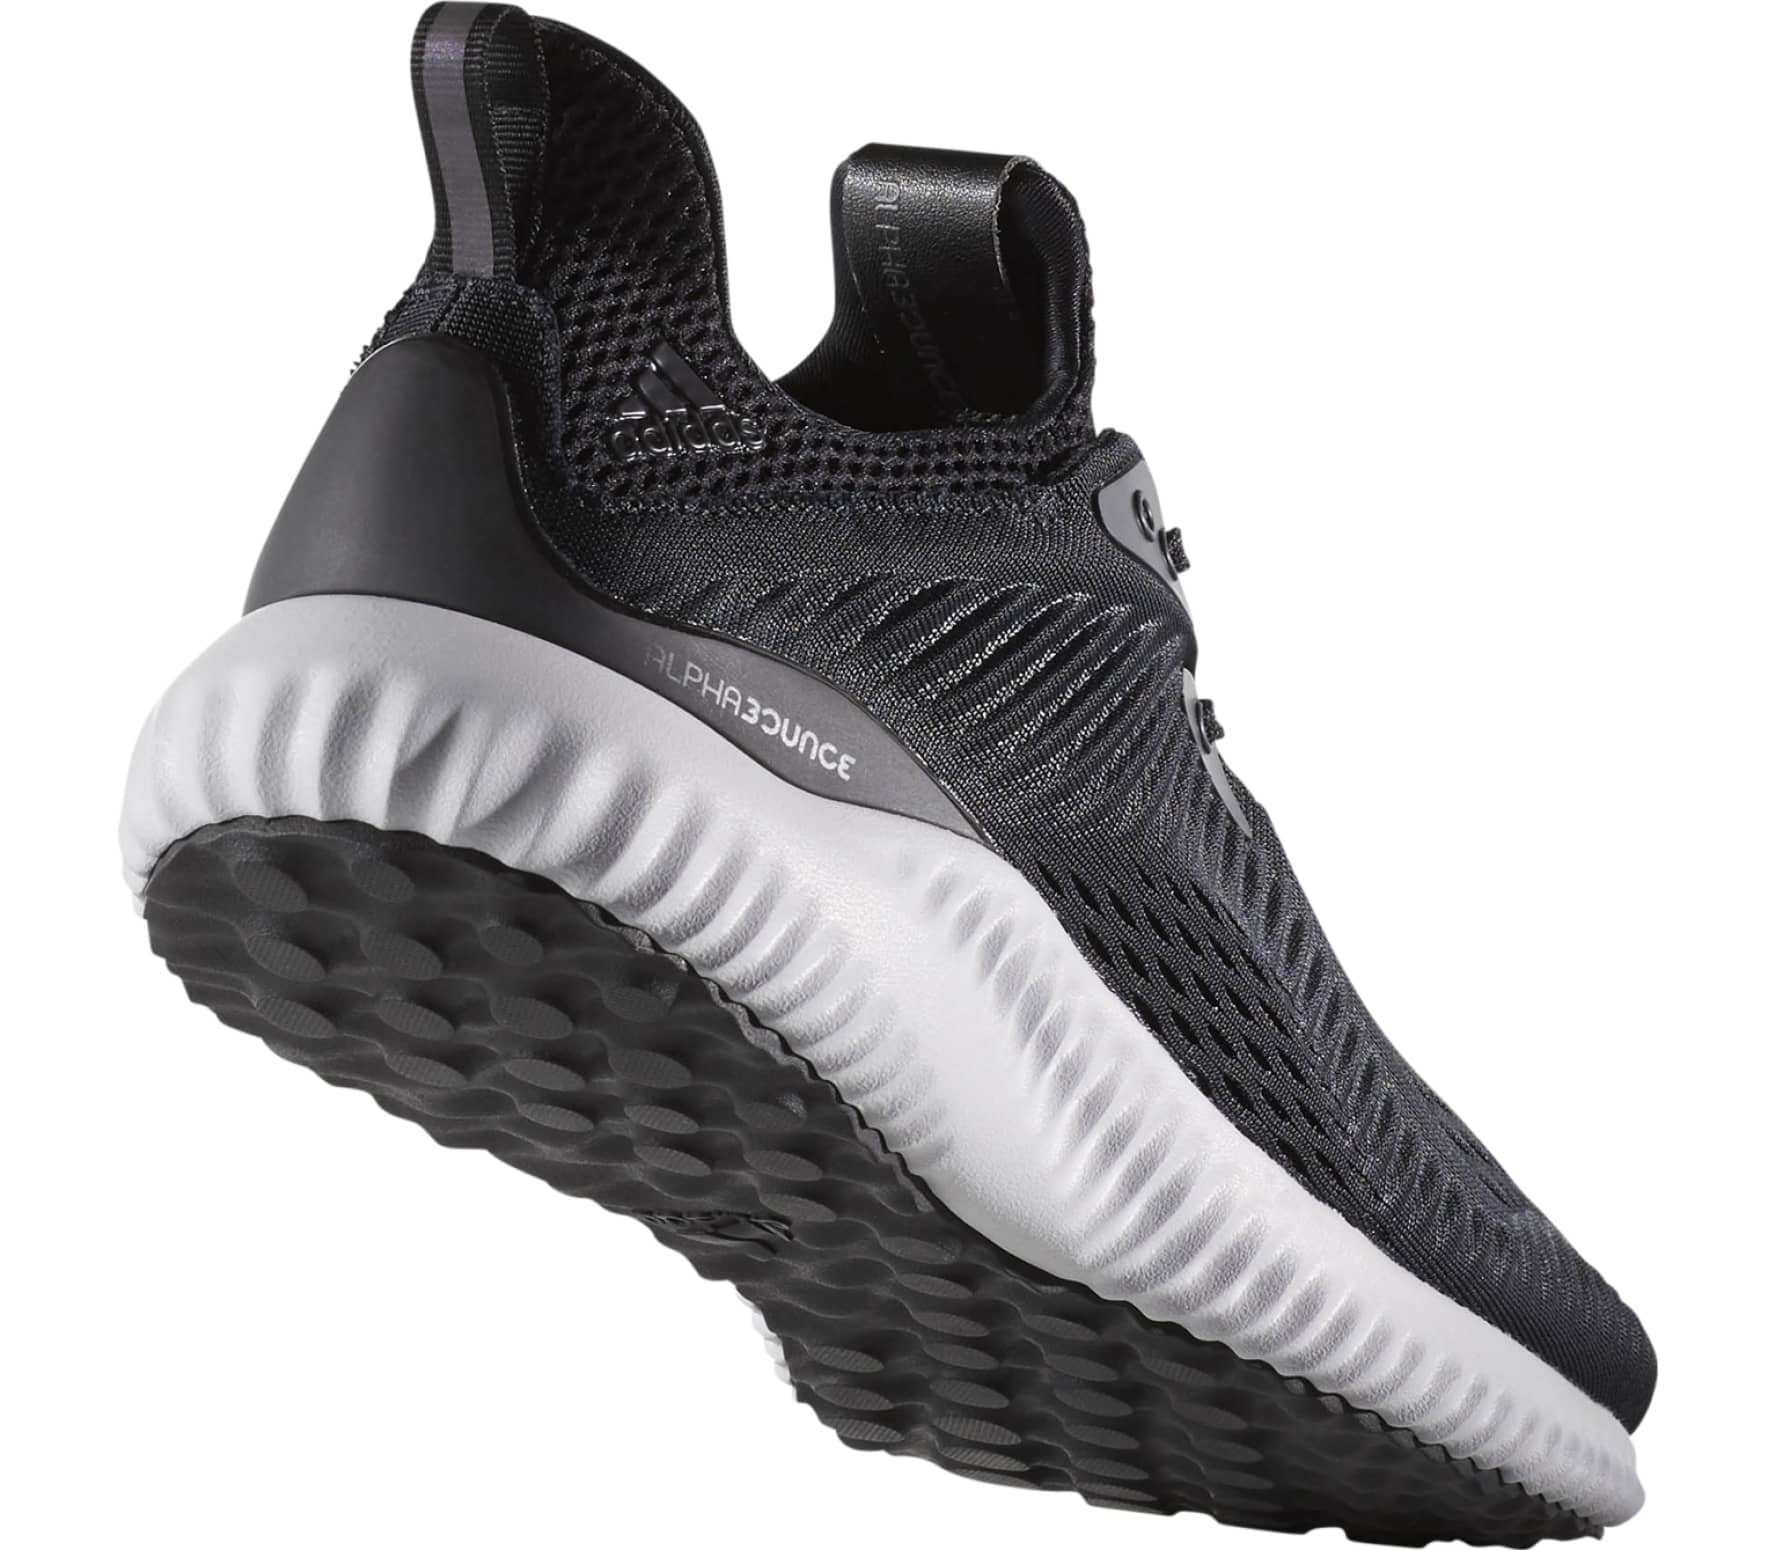 3c4671e8c482c Adidas - Alphabounce Em men s running shoes (black white) - buy it ...